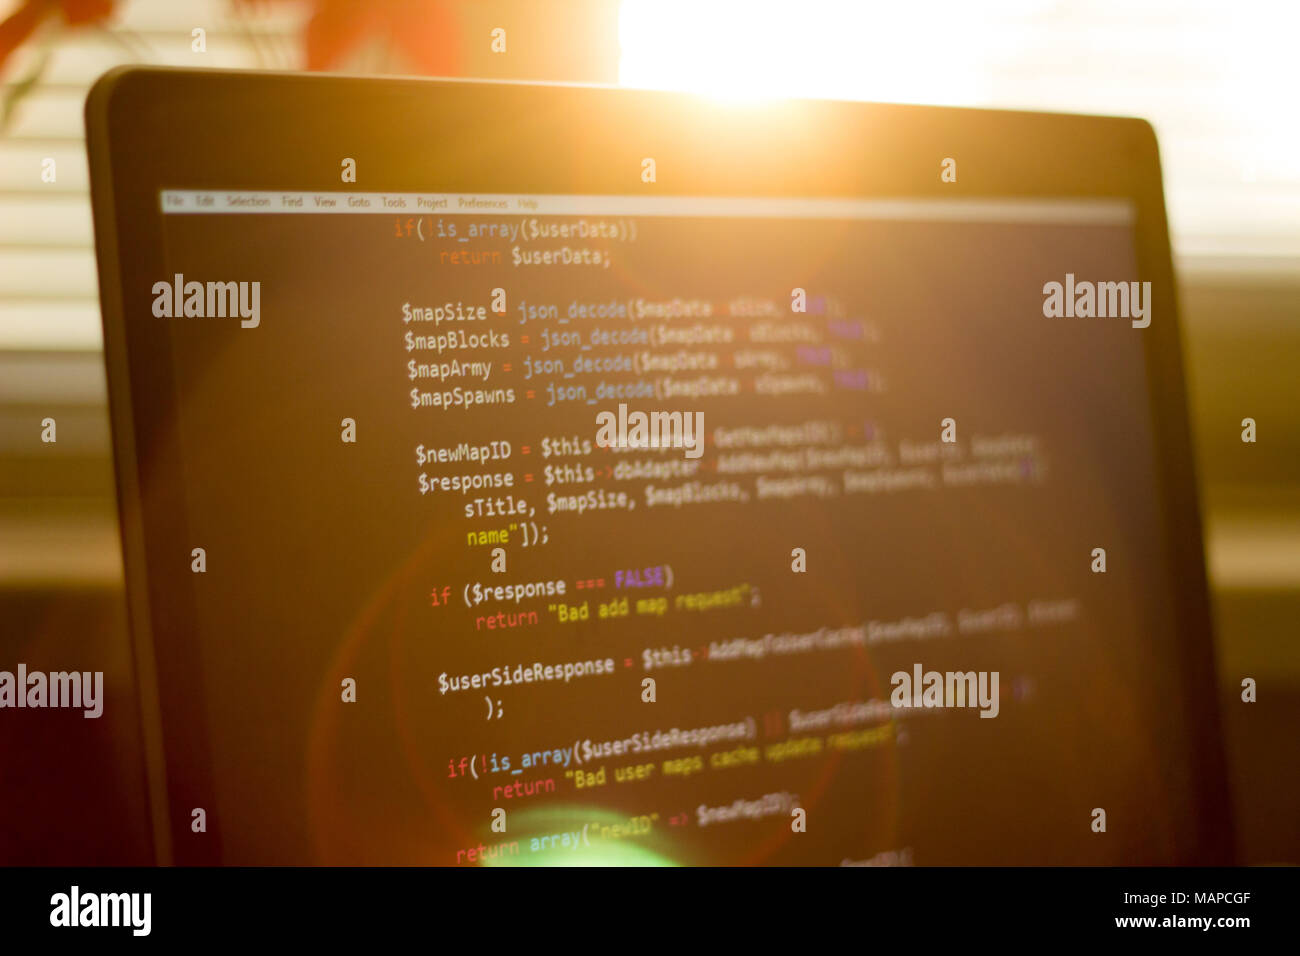 Php Stock Photos & Php Stock Images - Alamy